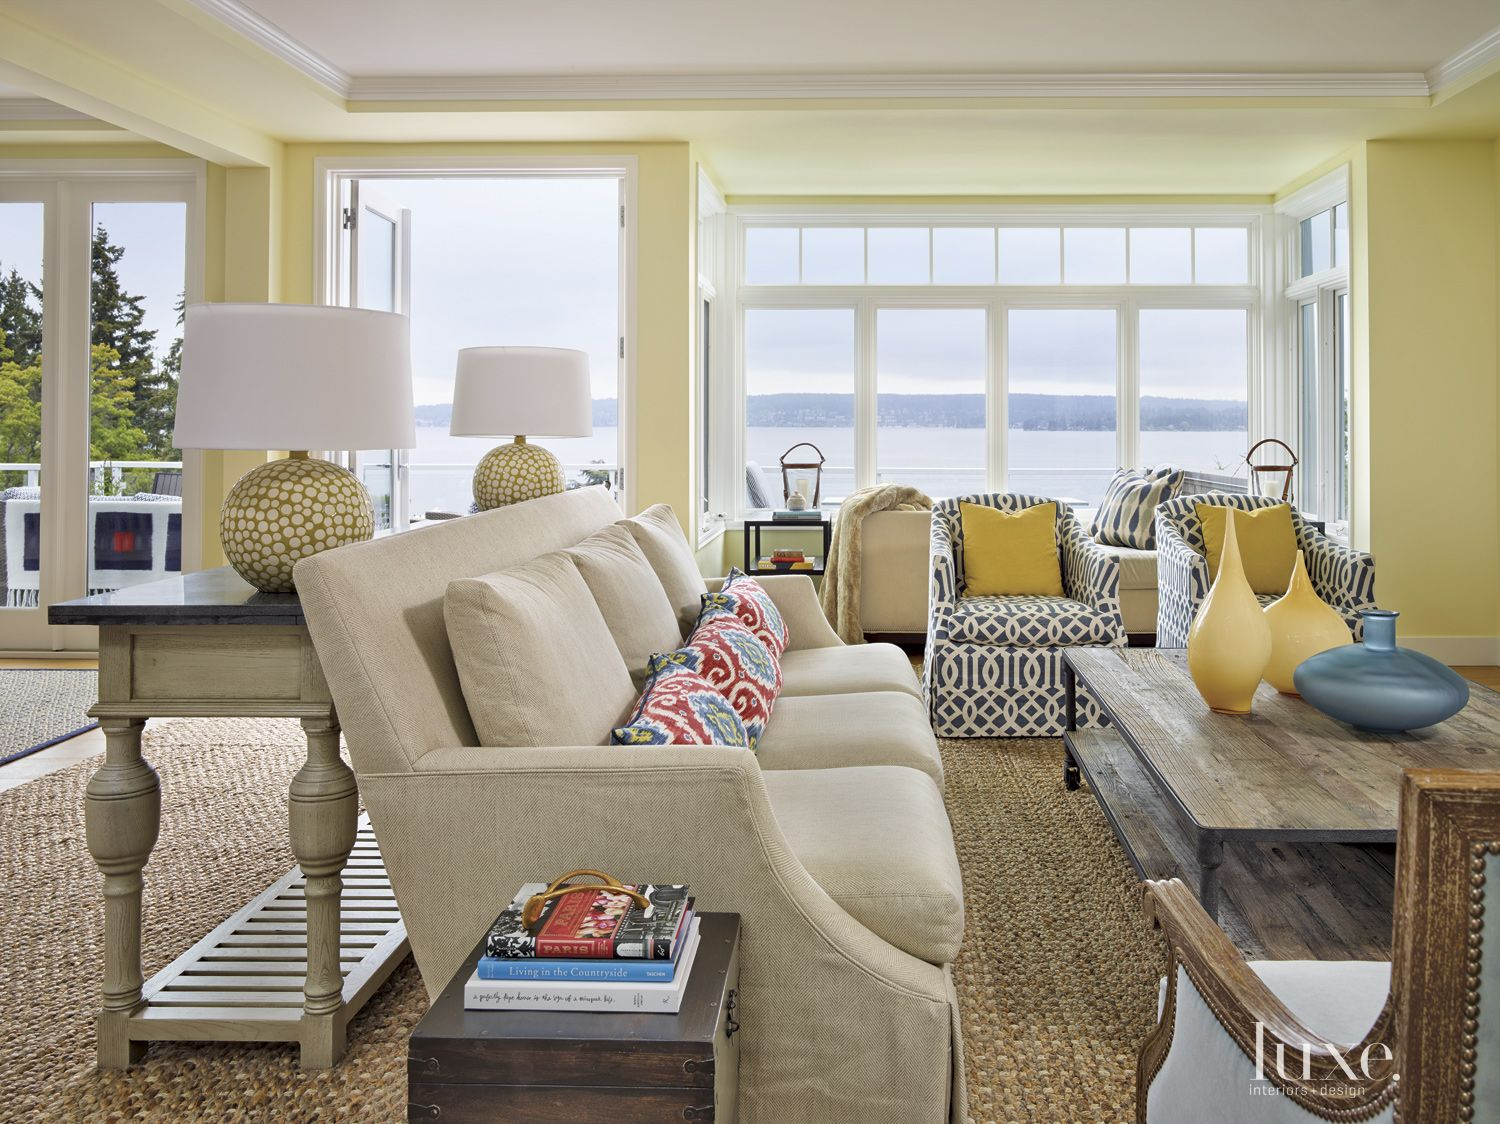 Contemporary Yellow Living Room with Colorful Patterns